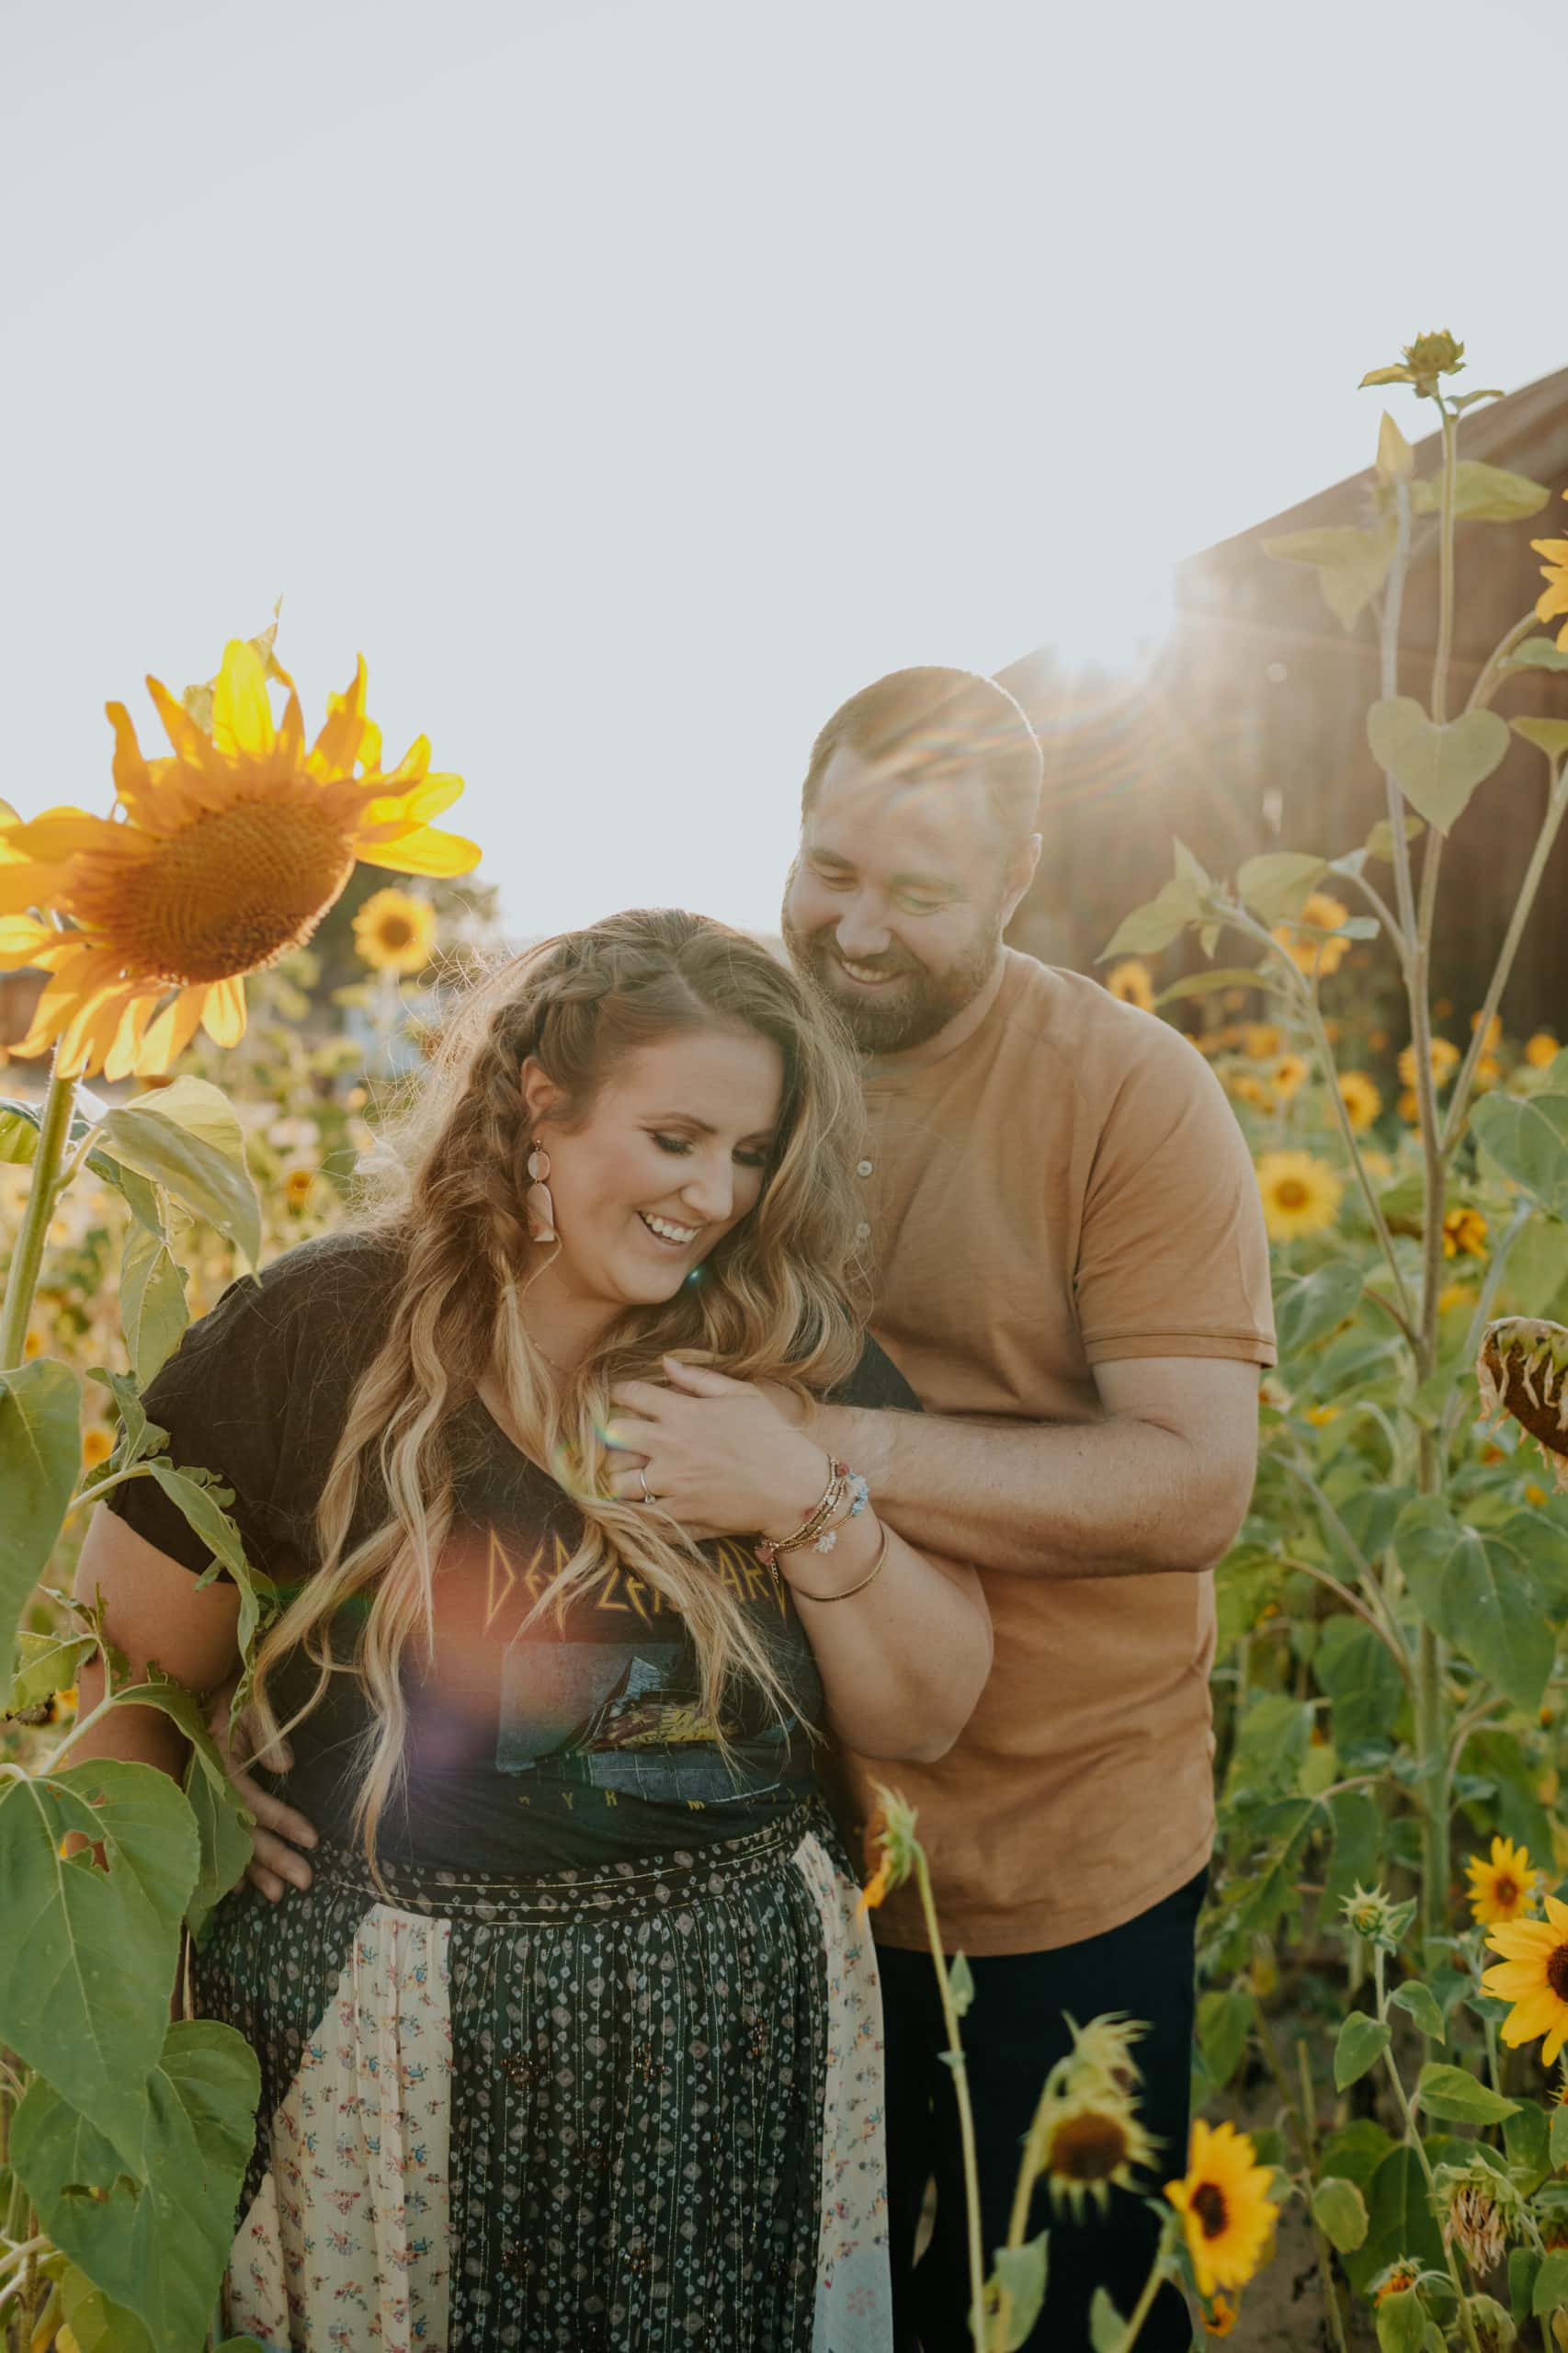 My mental health journey by family and maternity san francisco photographer, diana